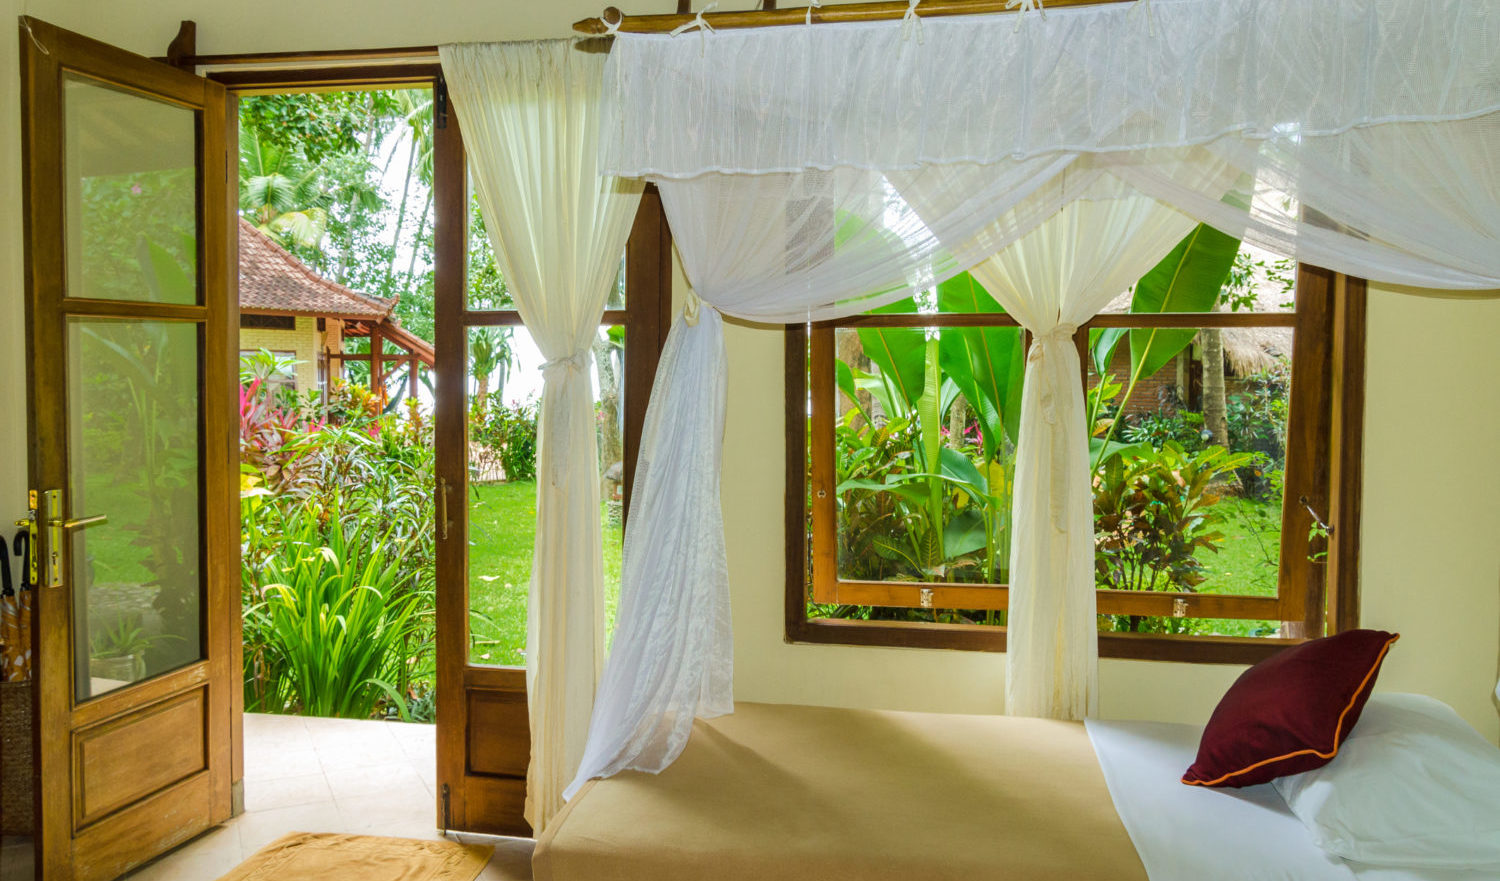 white curtains at a window. Behind the tropical jungle of Bali, Indonesia. View outside a resting room with bed and moskito net.